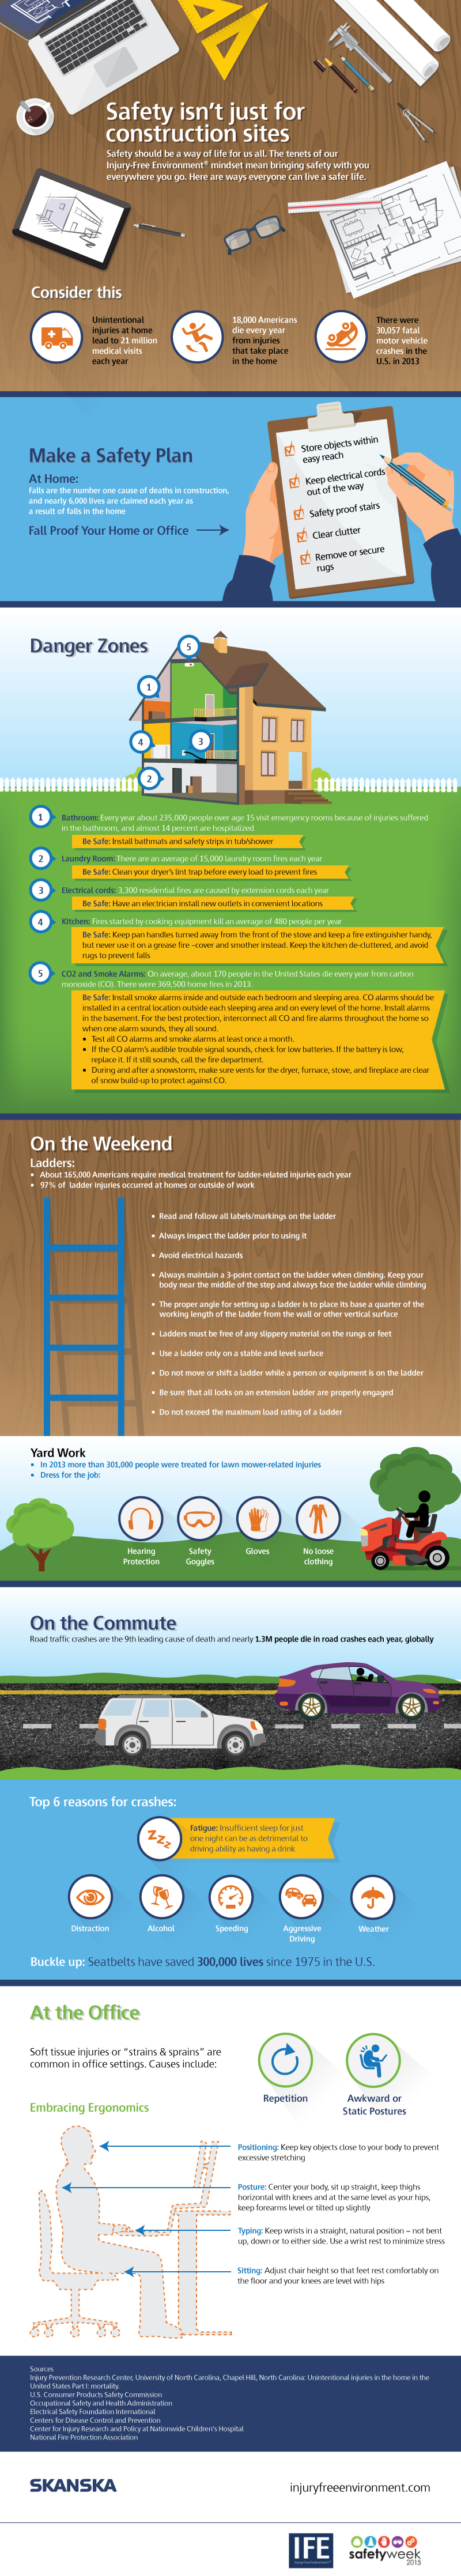 SafetyWeek_IG Safety infographic, Construction safety